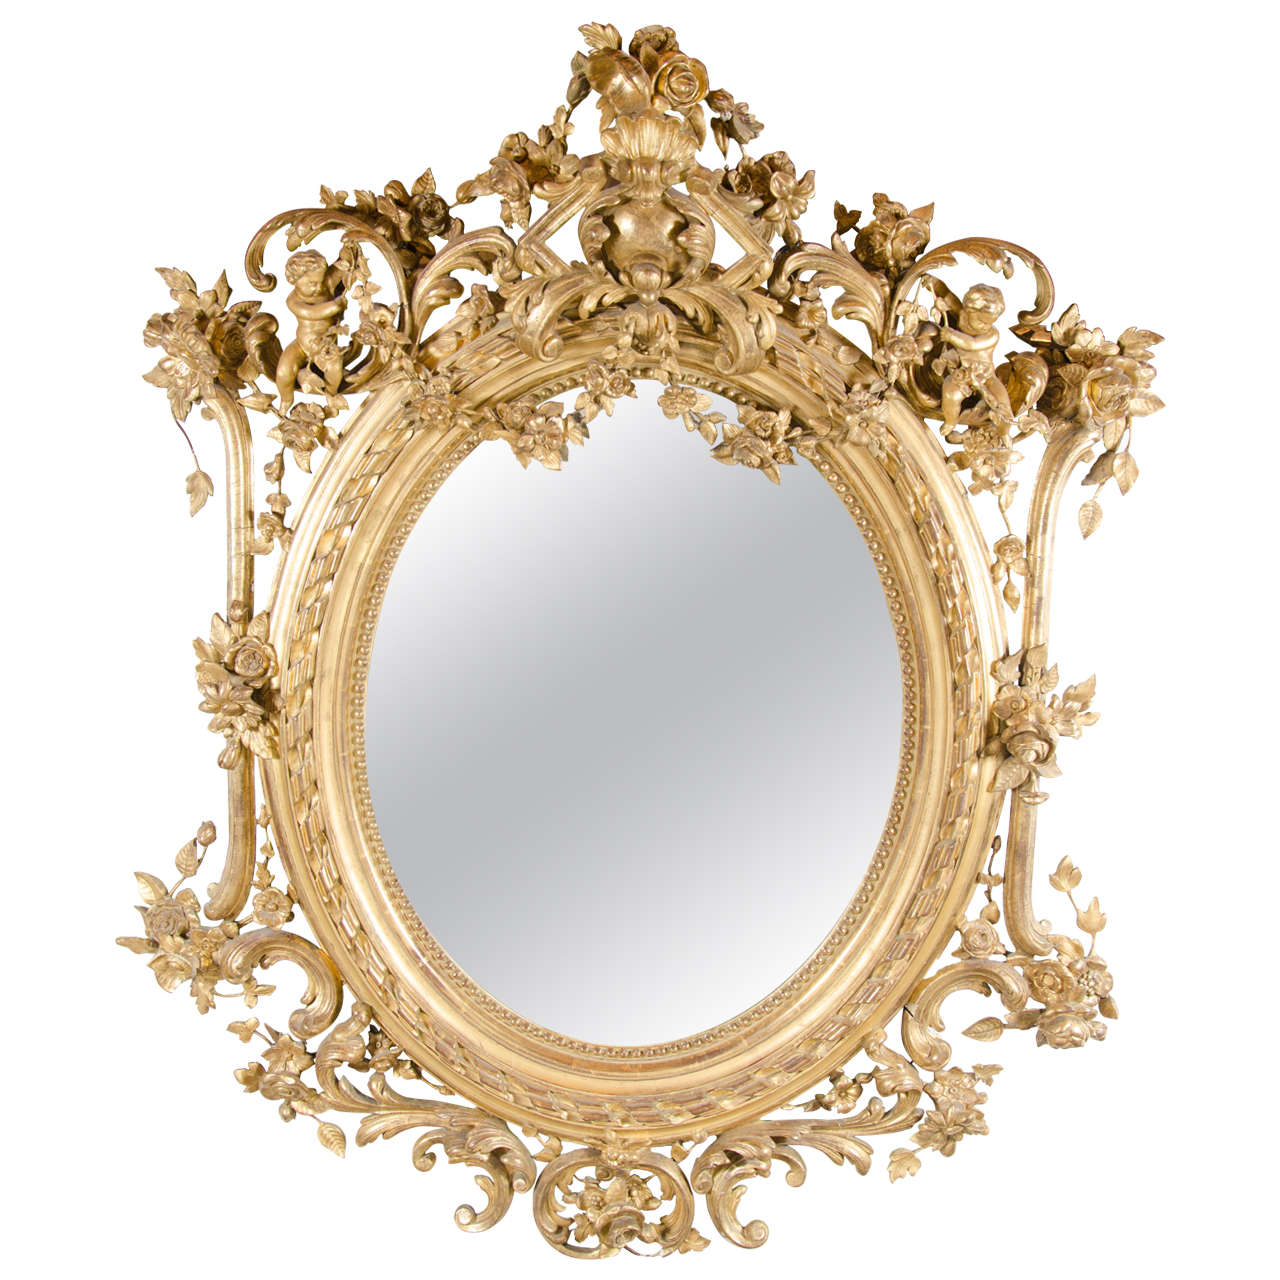 French Rococo Oval Mirror With 24 Karat Gold Gilt And Foliage Details For